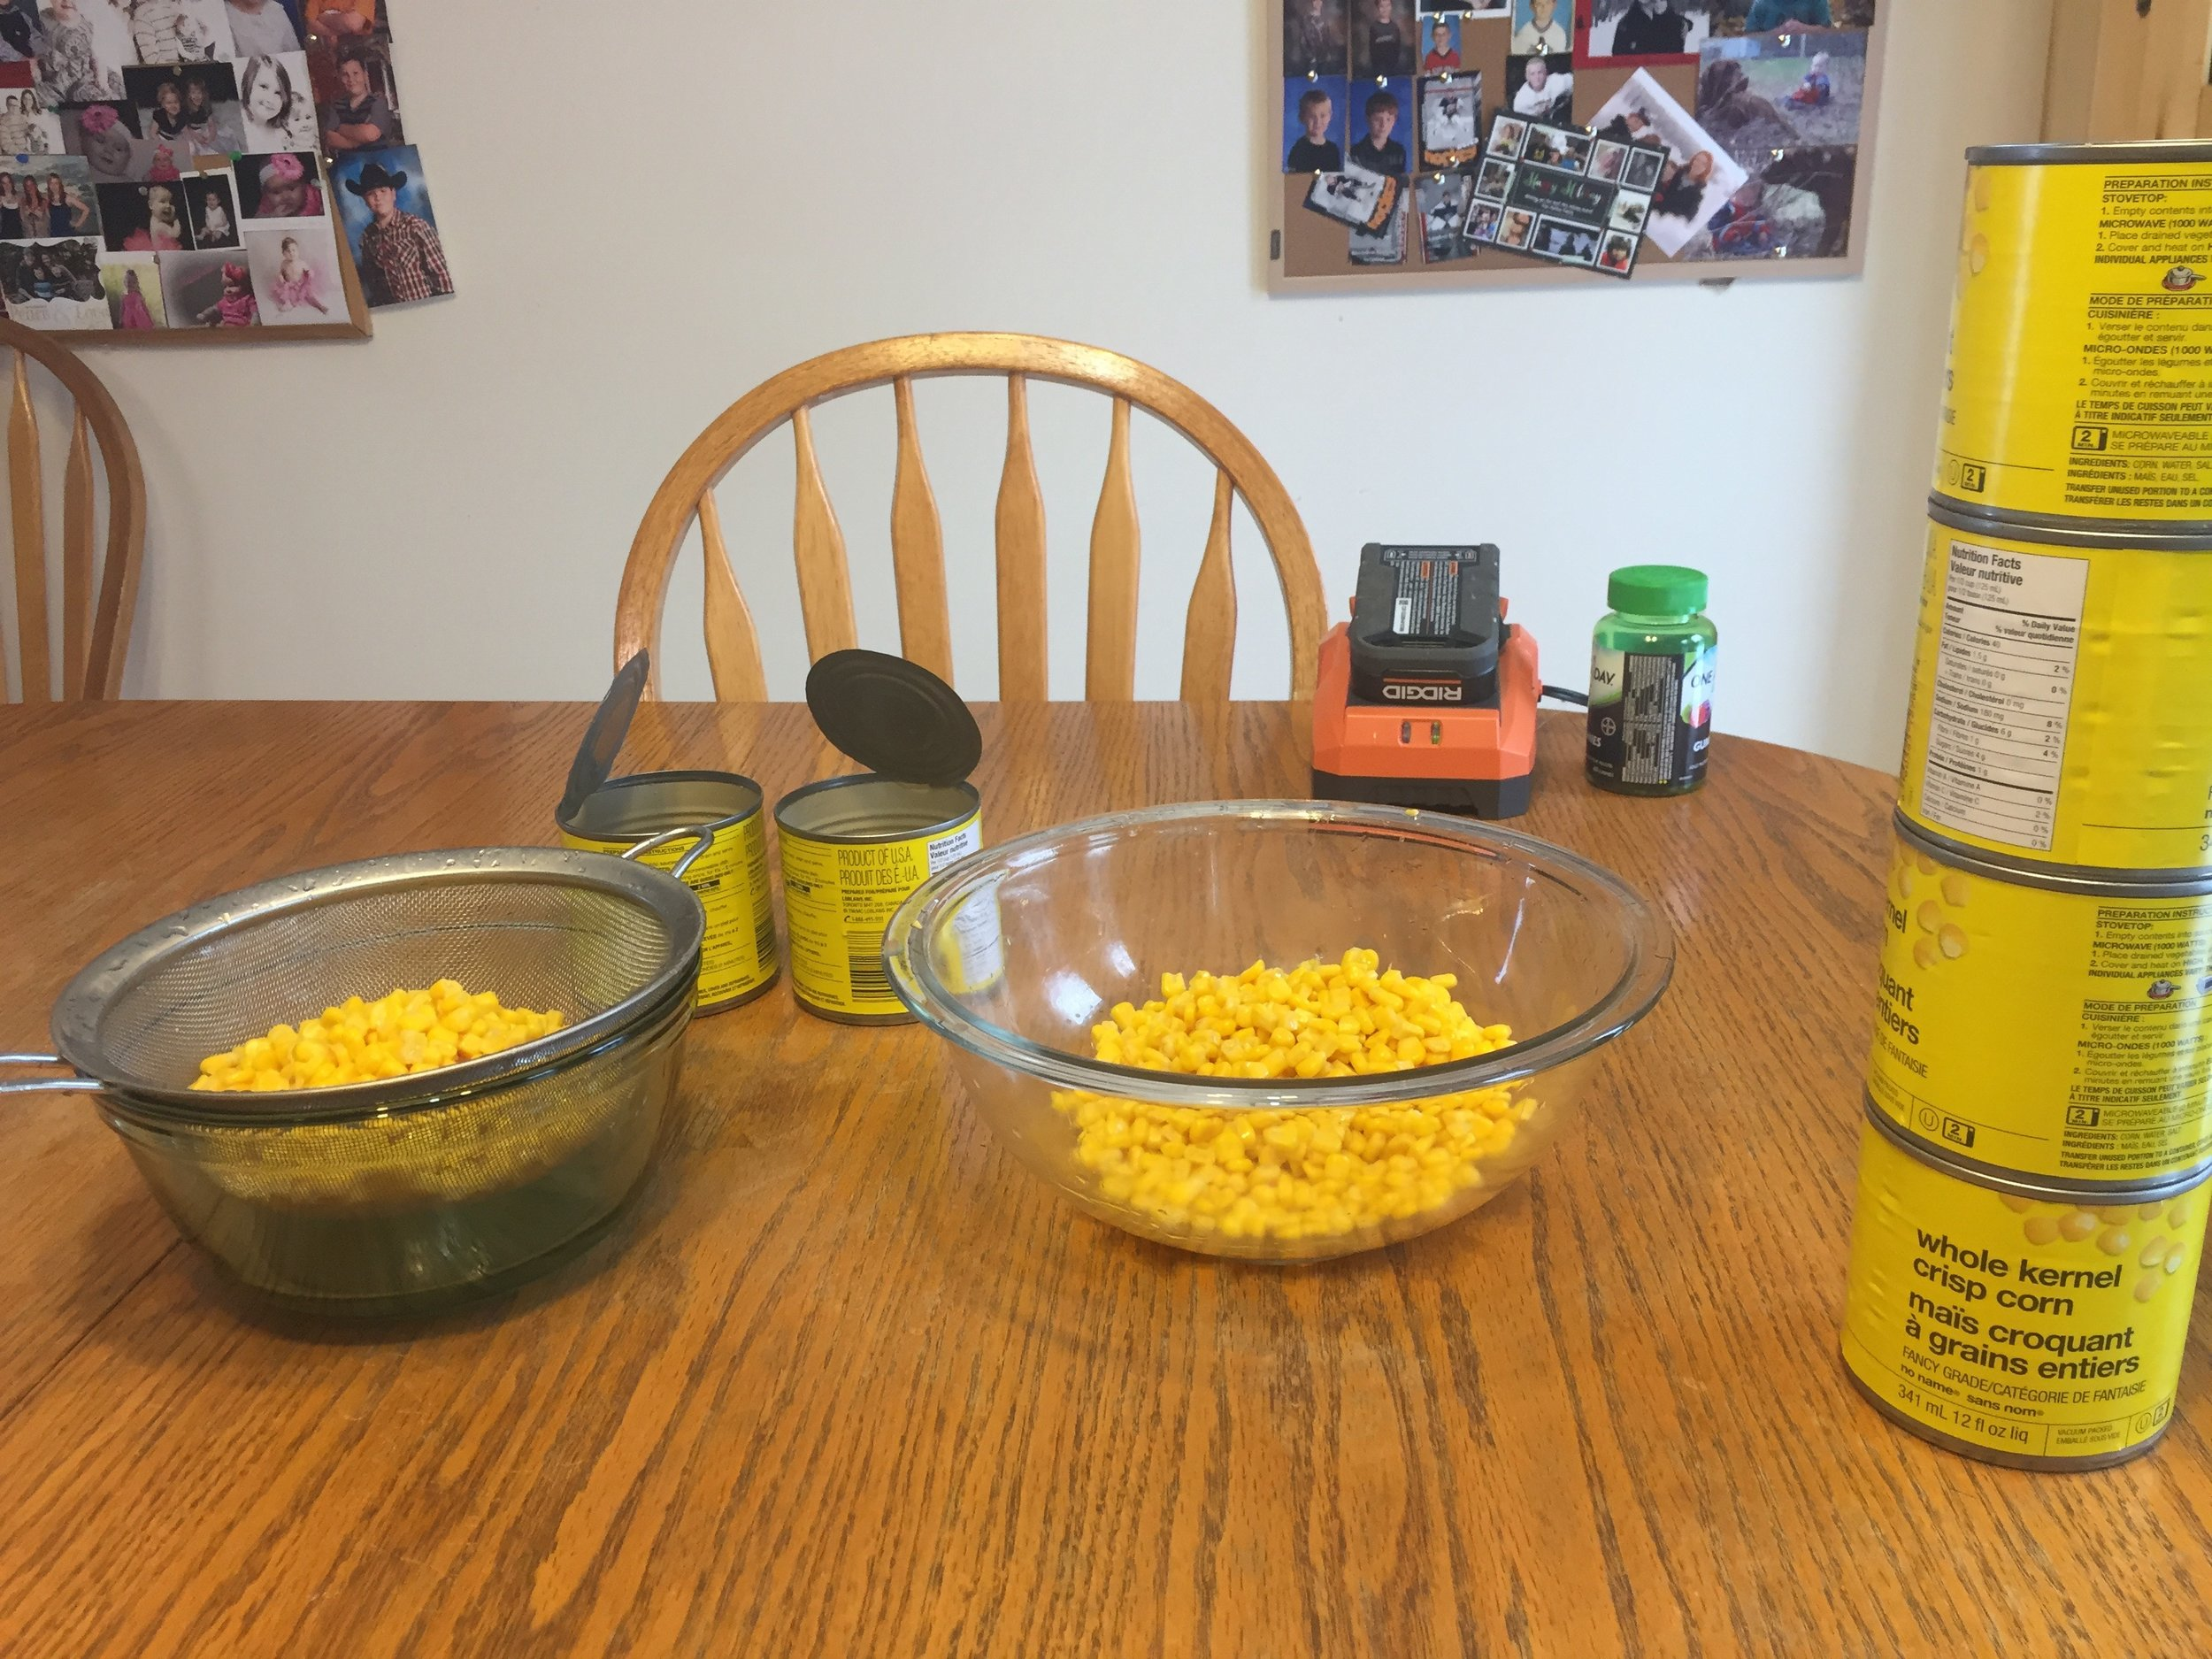 Decided to sit down for the corn. I was getting tired.